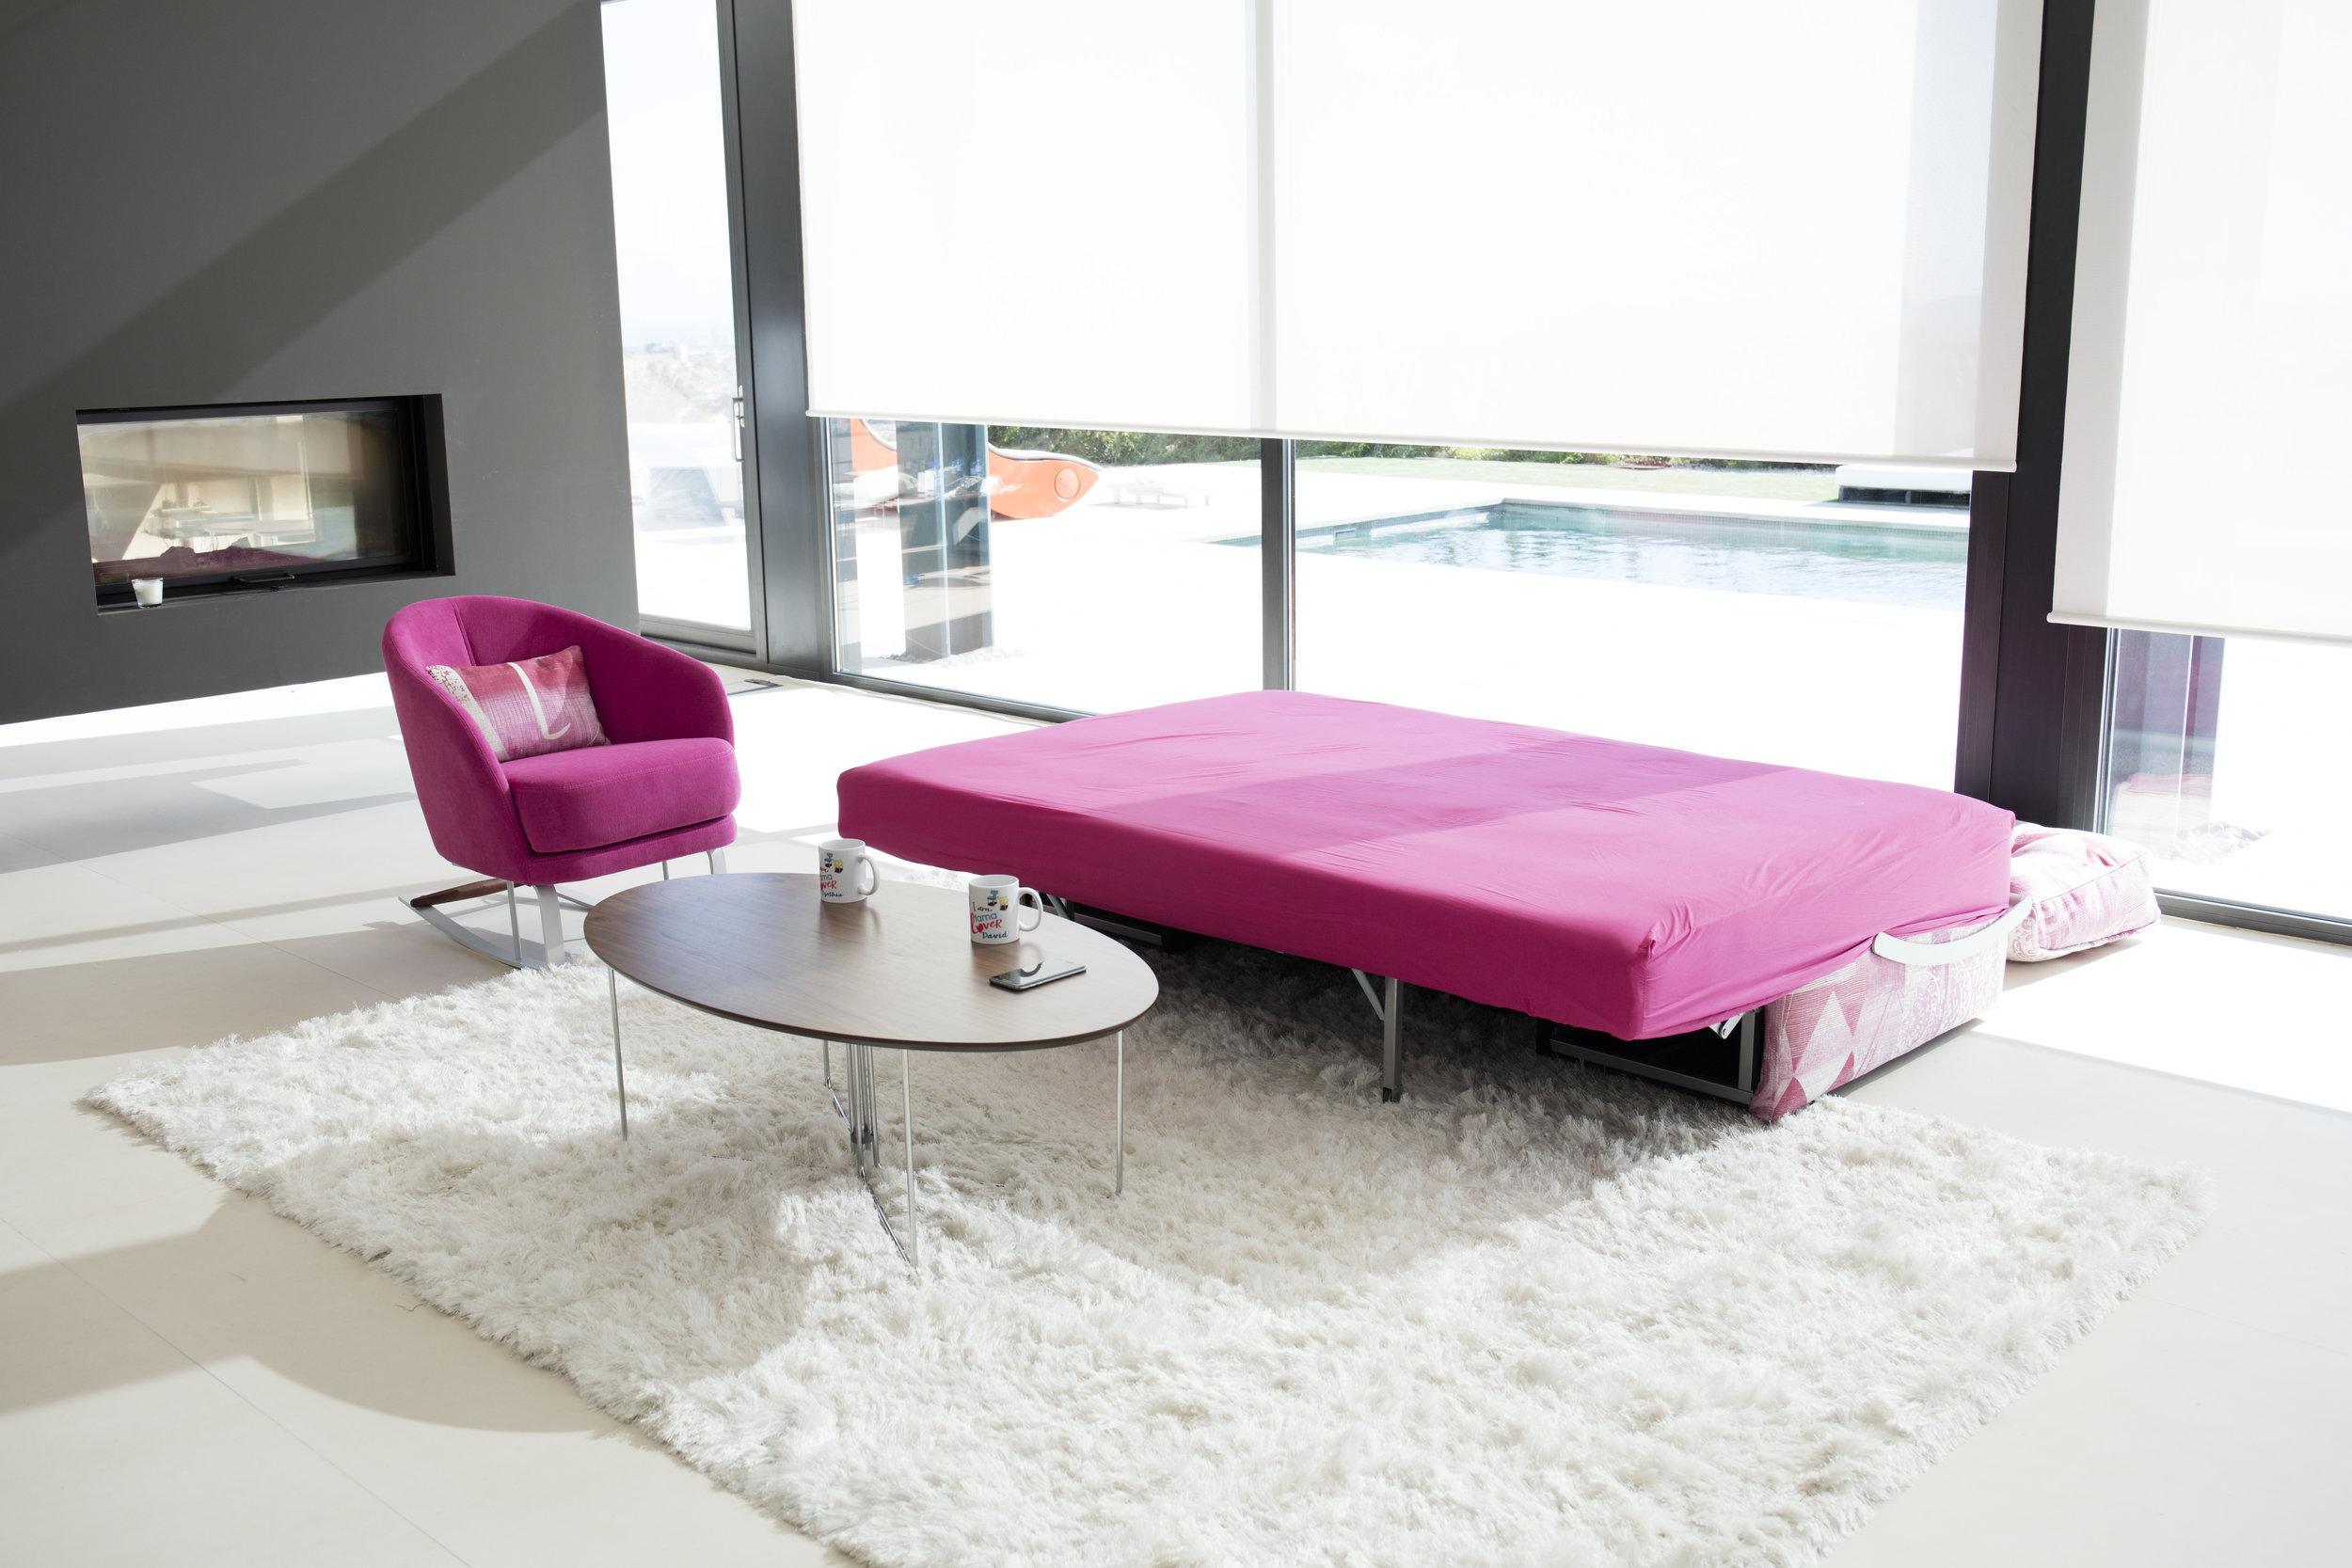 INDY FAMALIVING MEXICO SOFA CAMA 19.JPG